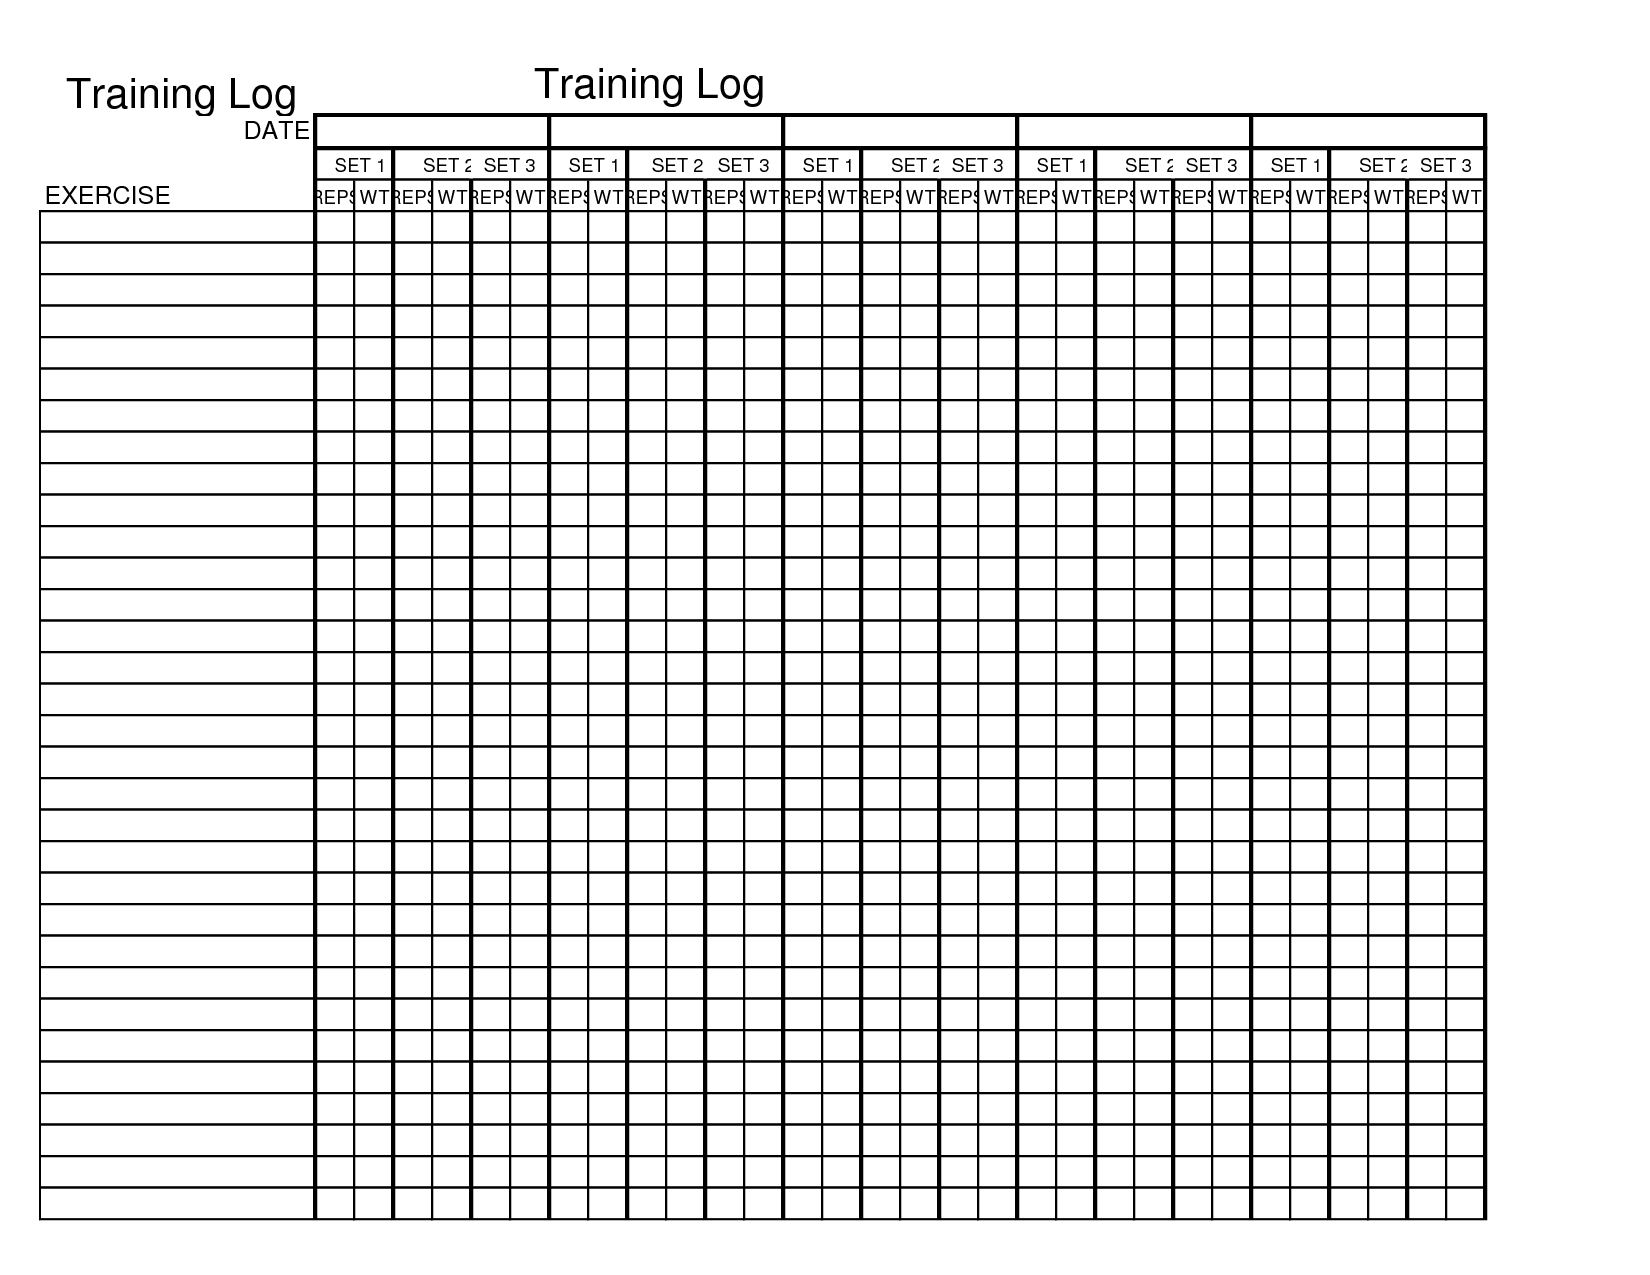 Training log template chp9ktls exercise pinterest for Training record template in excel